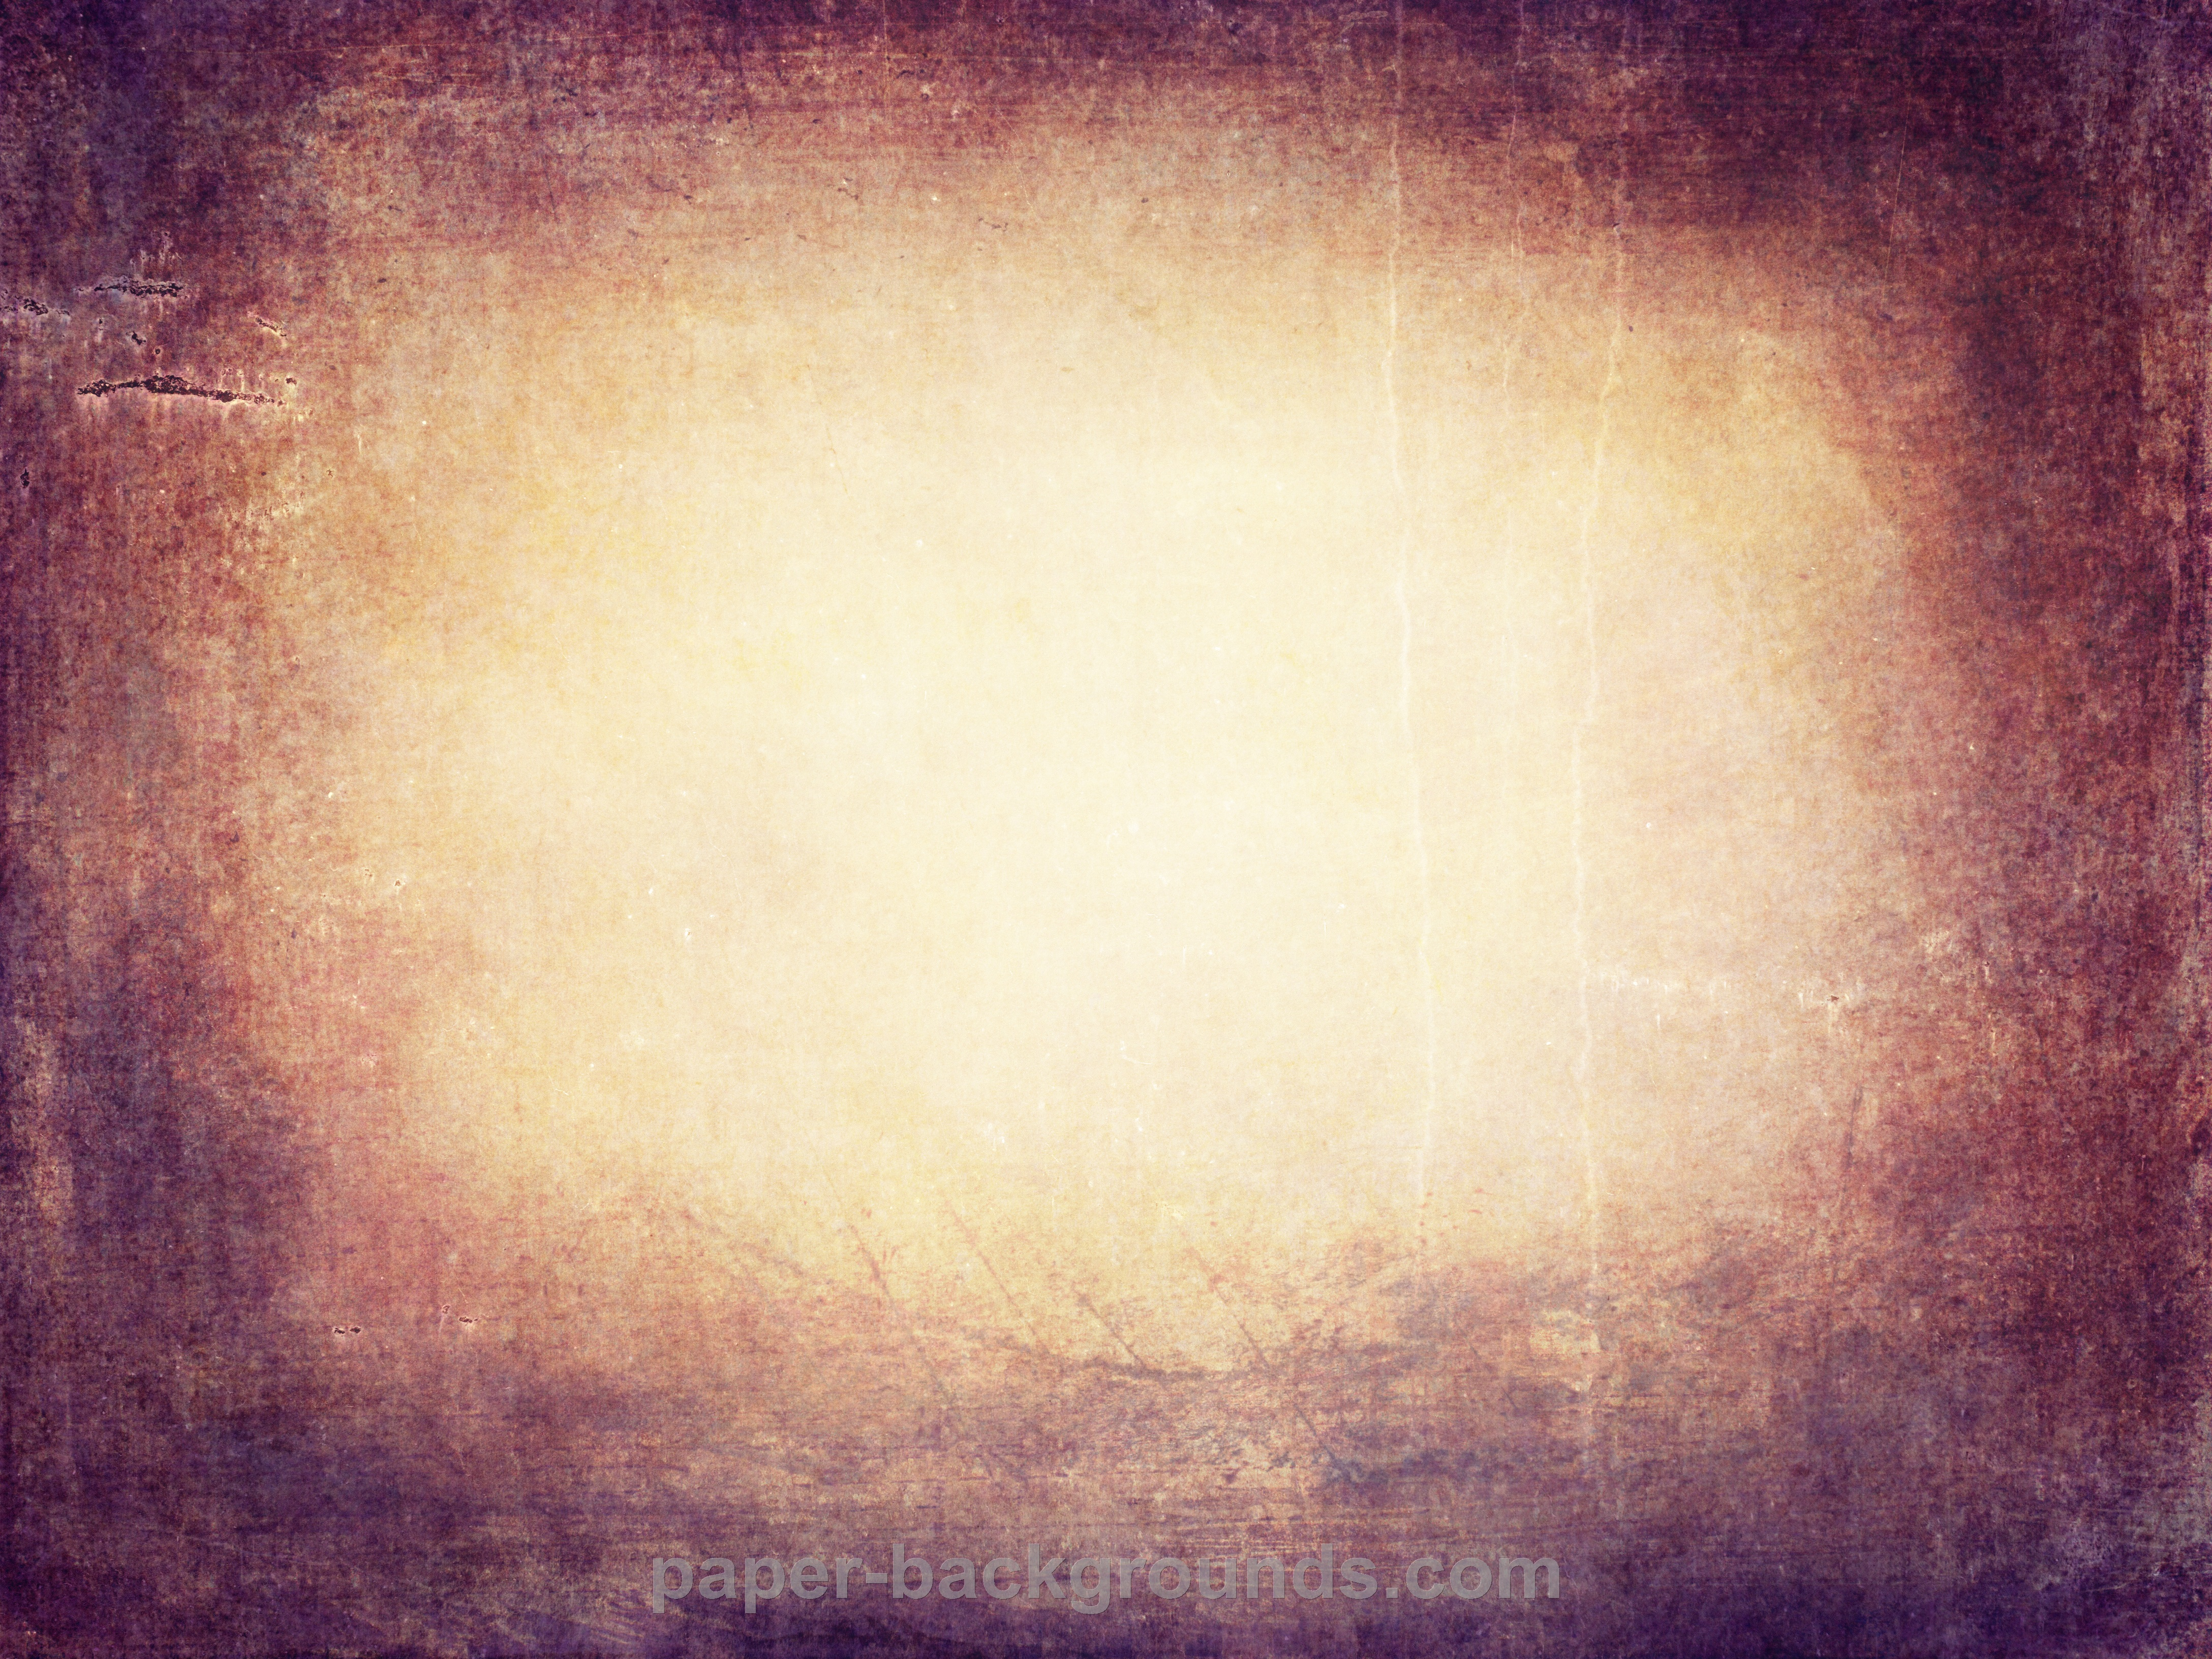 Paper Backgrounds  yellow vintage rusty metal background #4062